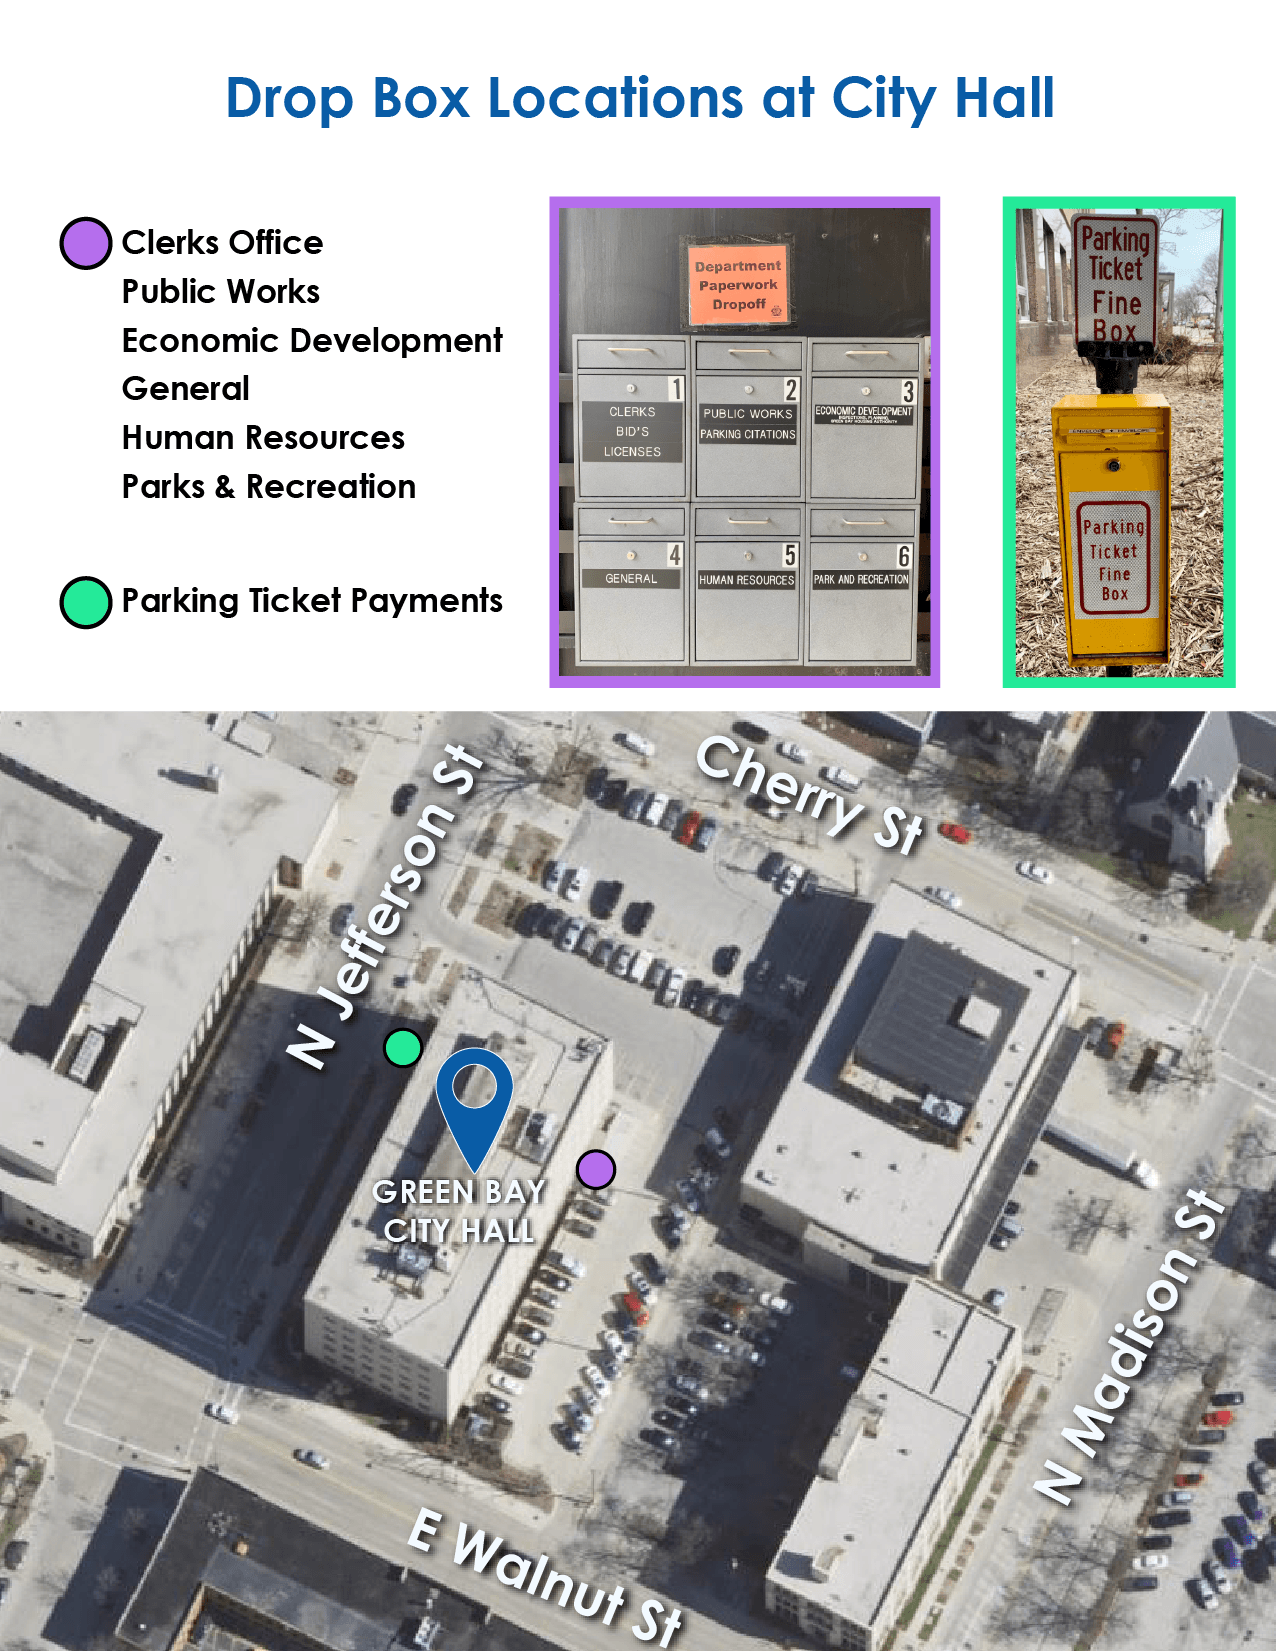 Drop Box Locations at City Hall